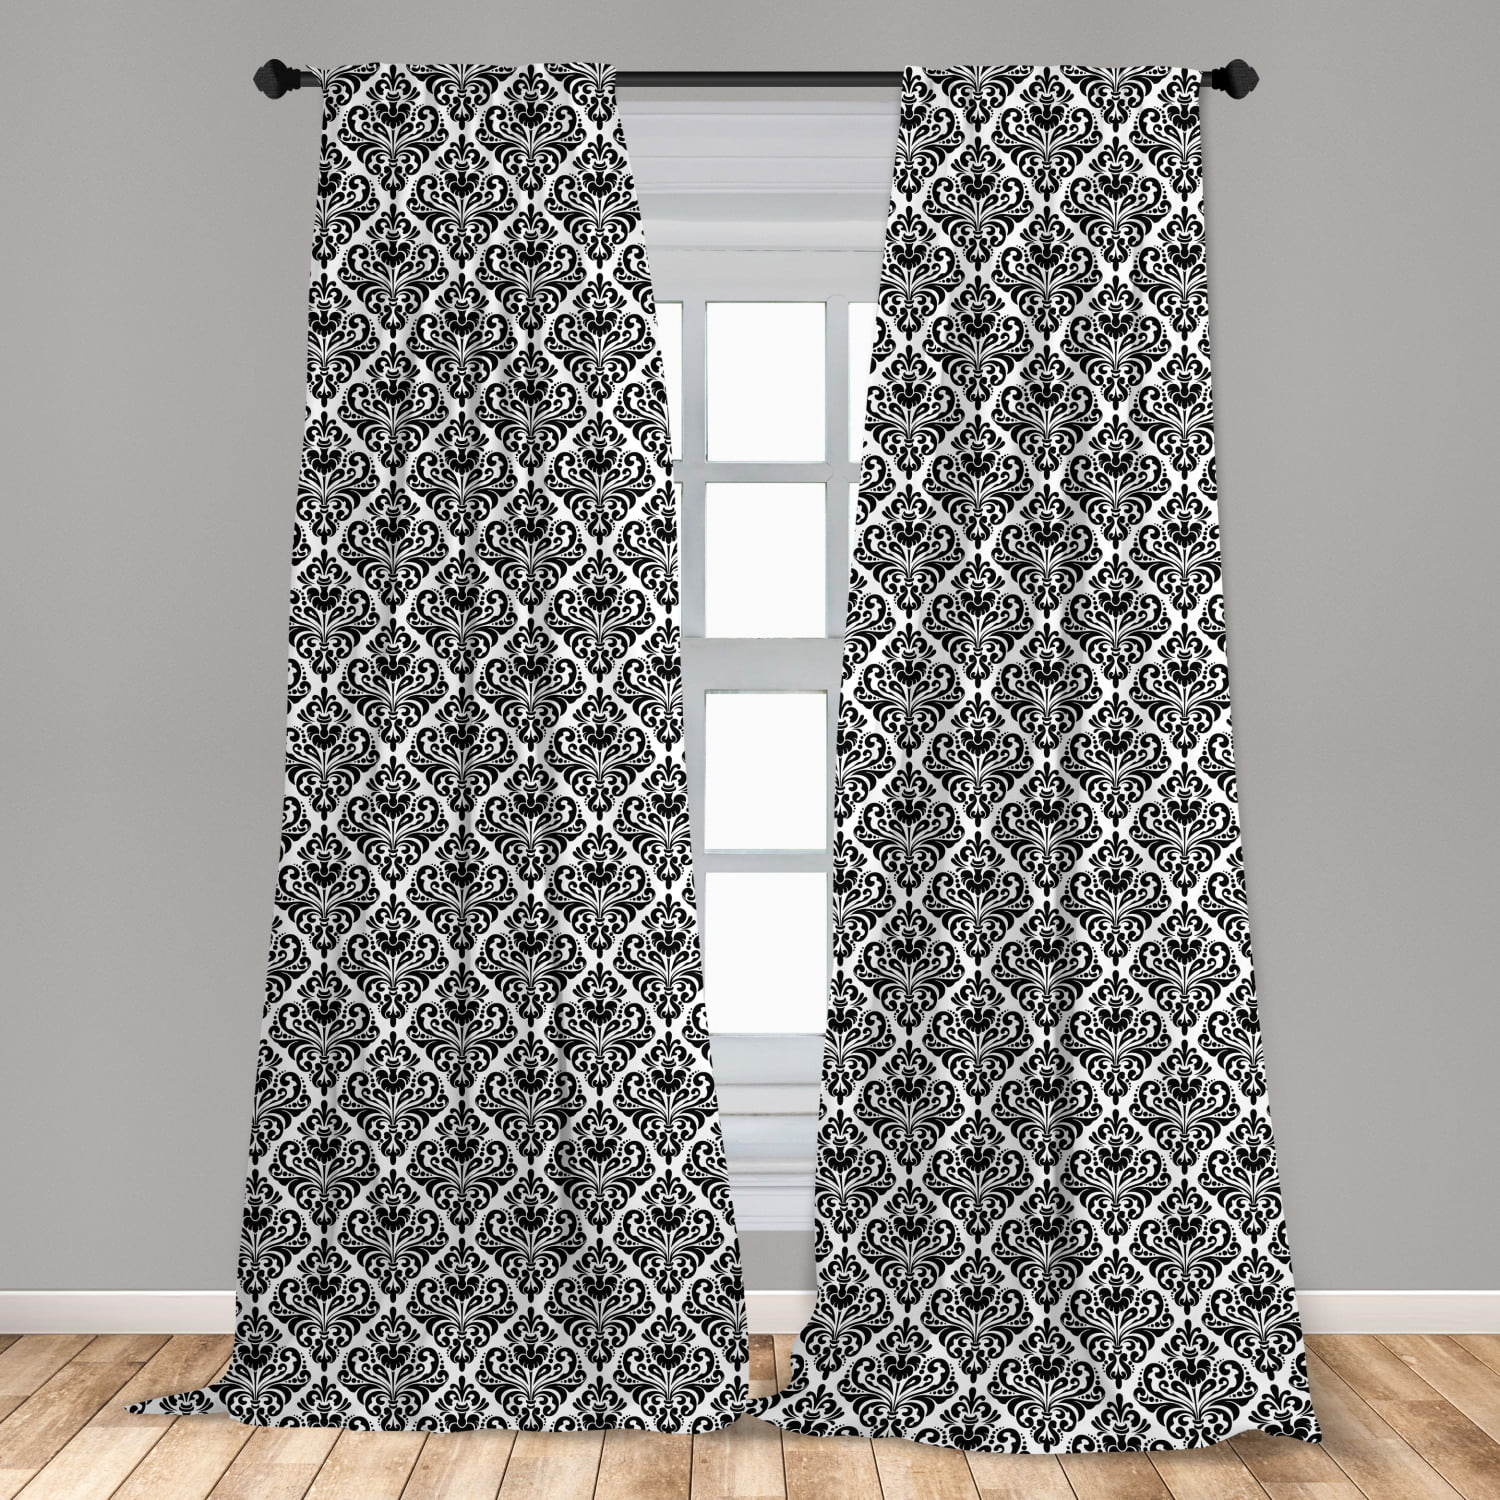 damask curtains 2 panels set symmetrical damask motif with floral elements flowers and leaves with curves image window drapes for living room